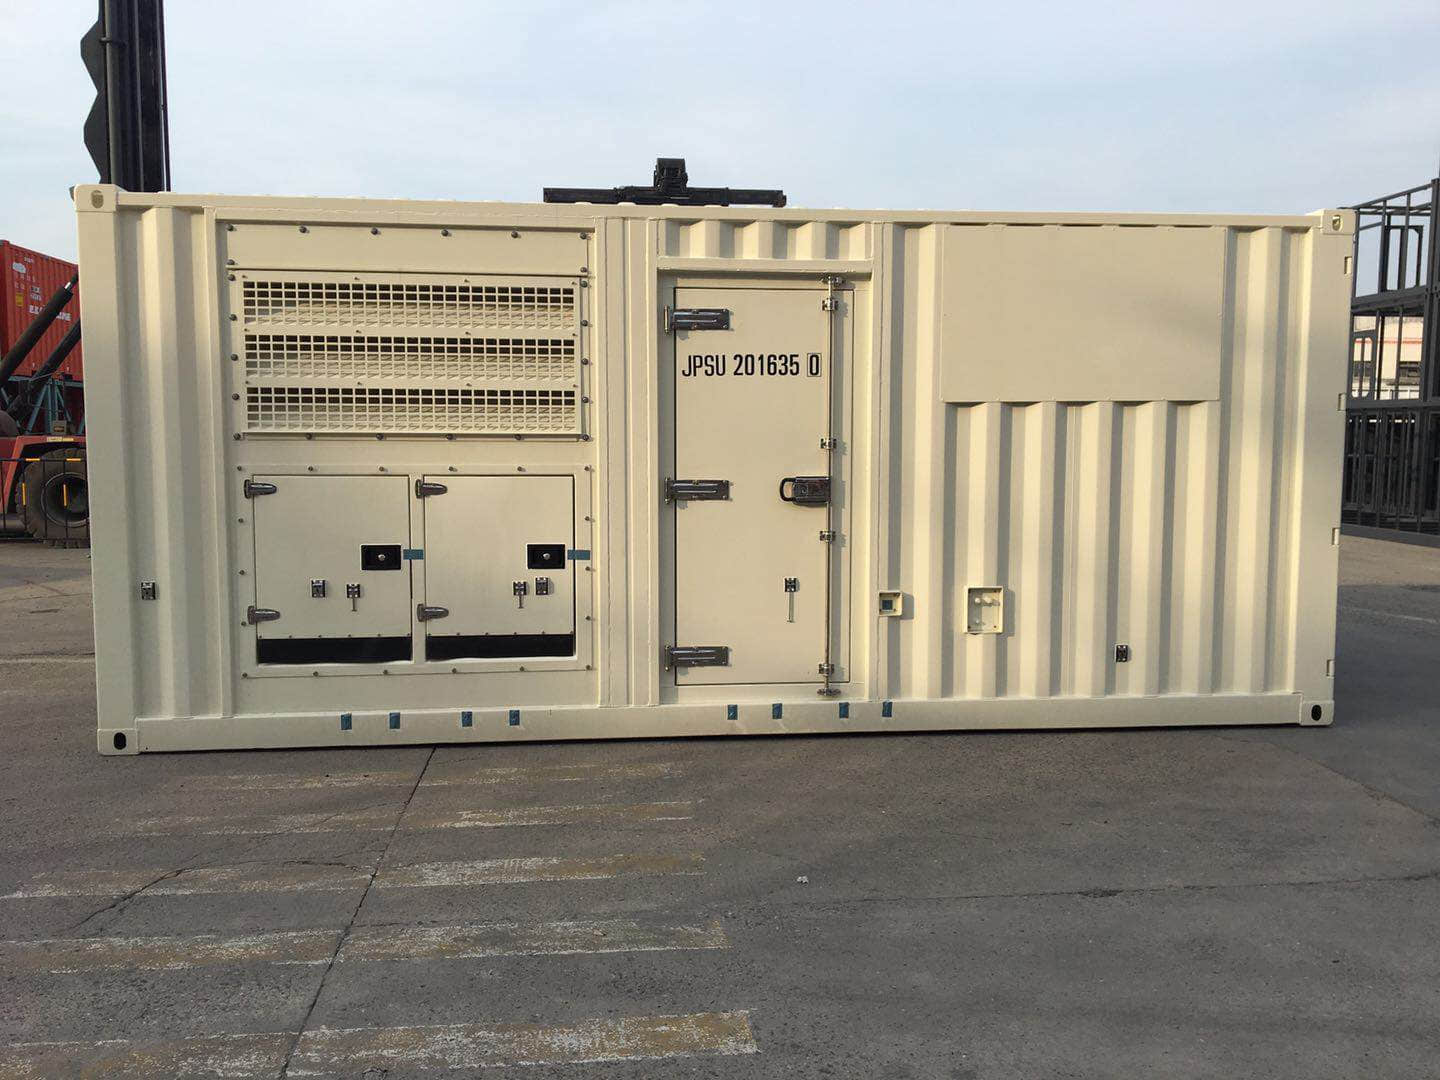 Generator container side view